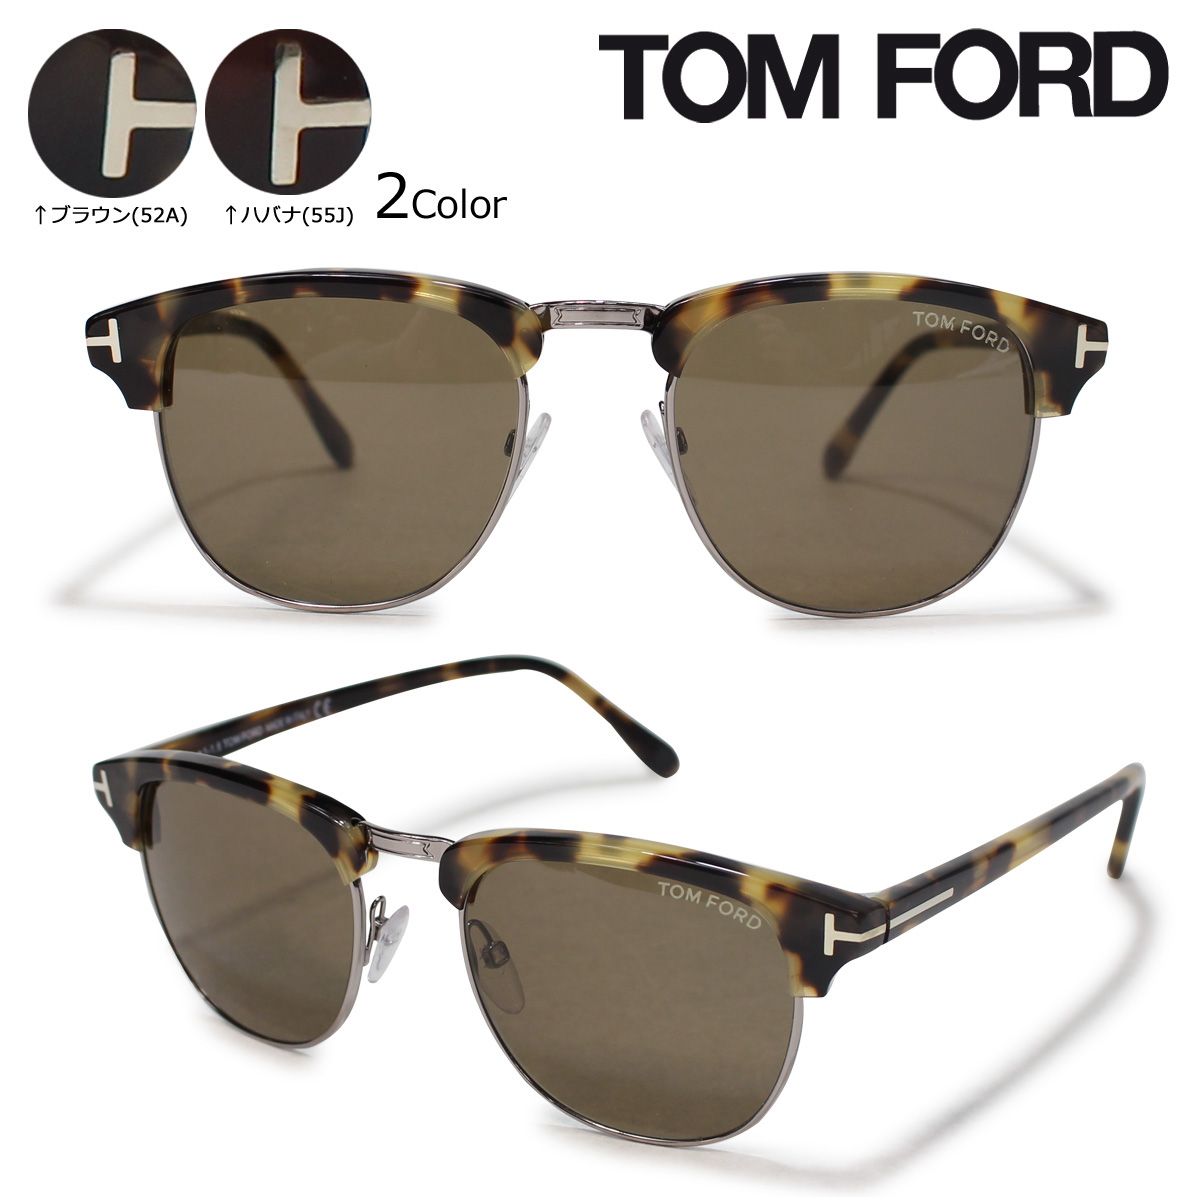 6f5d9c7616 ALLSPORTS  Product made in Tom Ford sunglasses men gap Dis TOM FORD ...